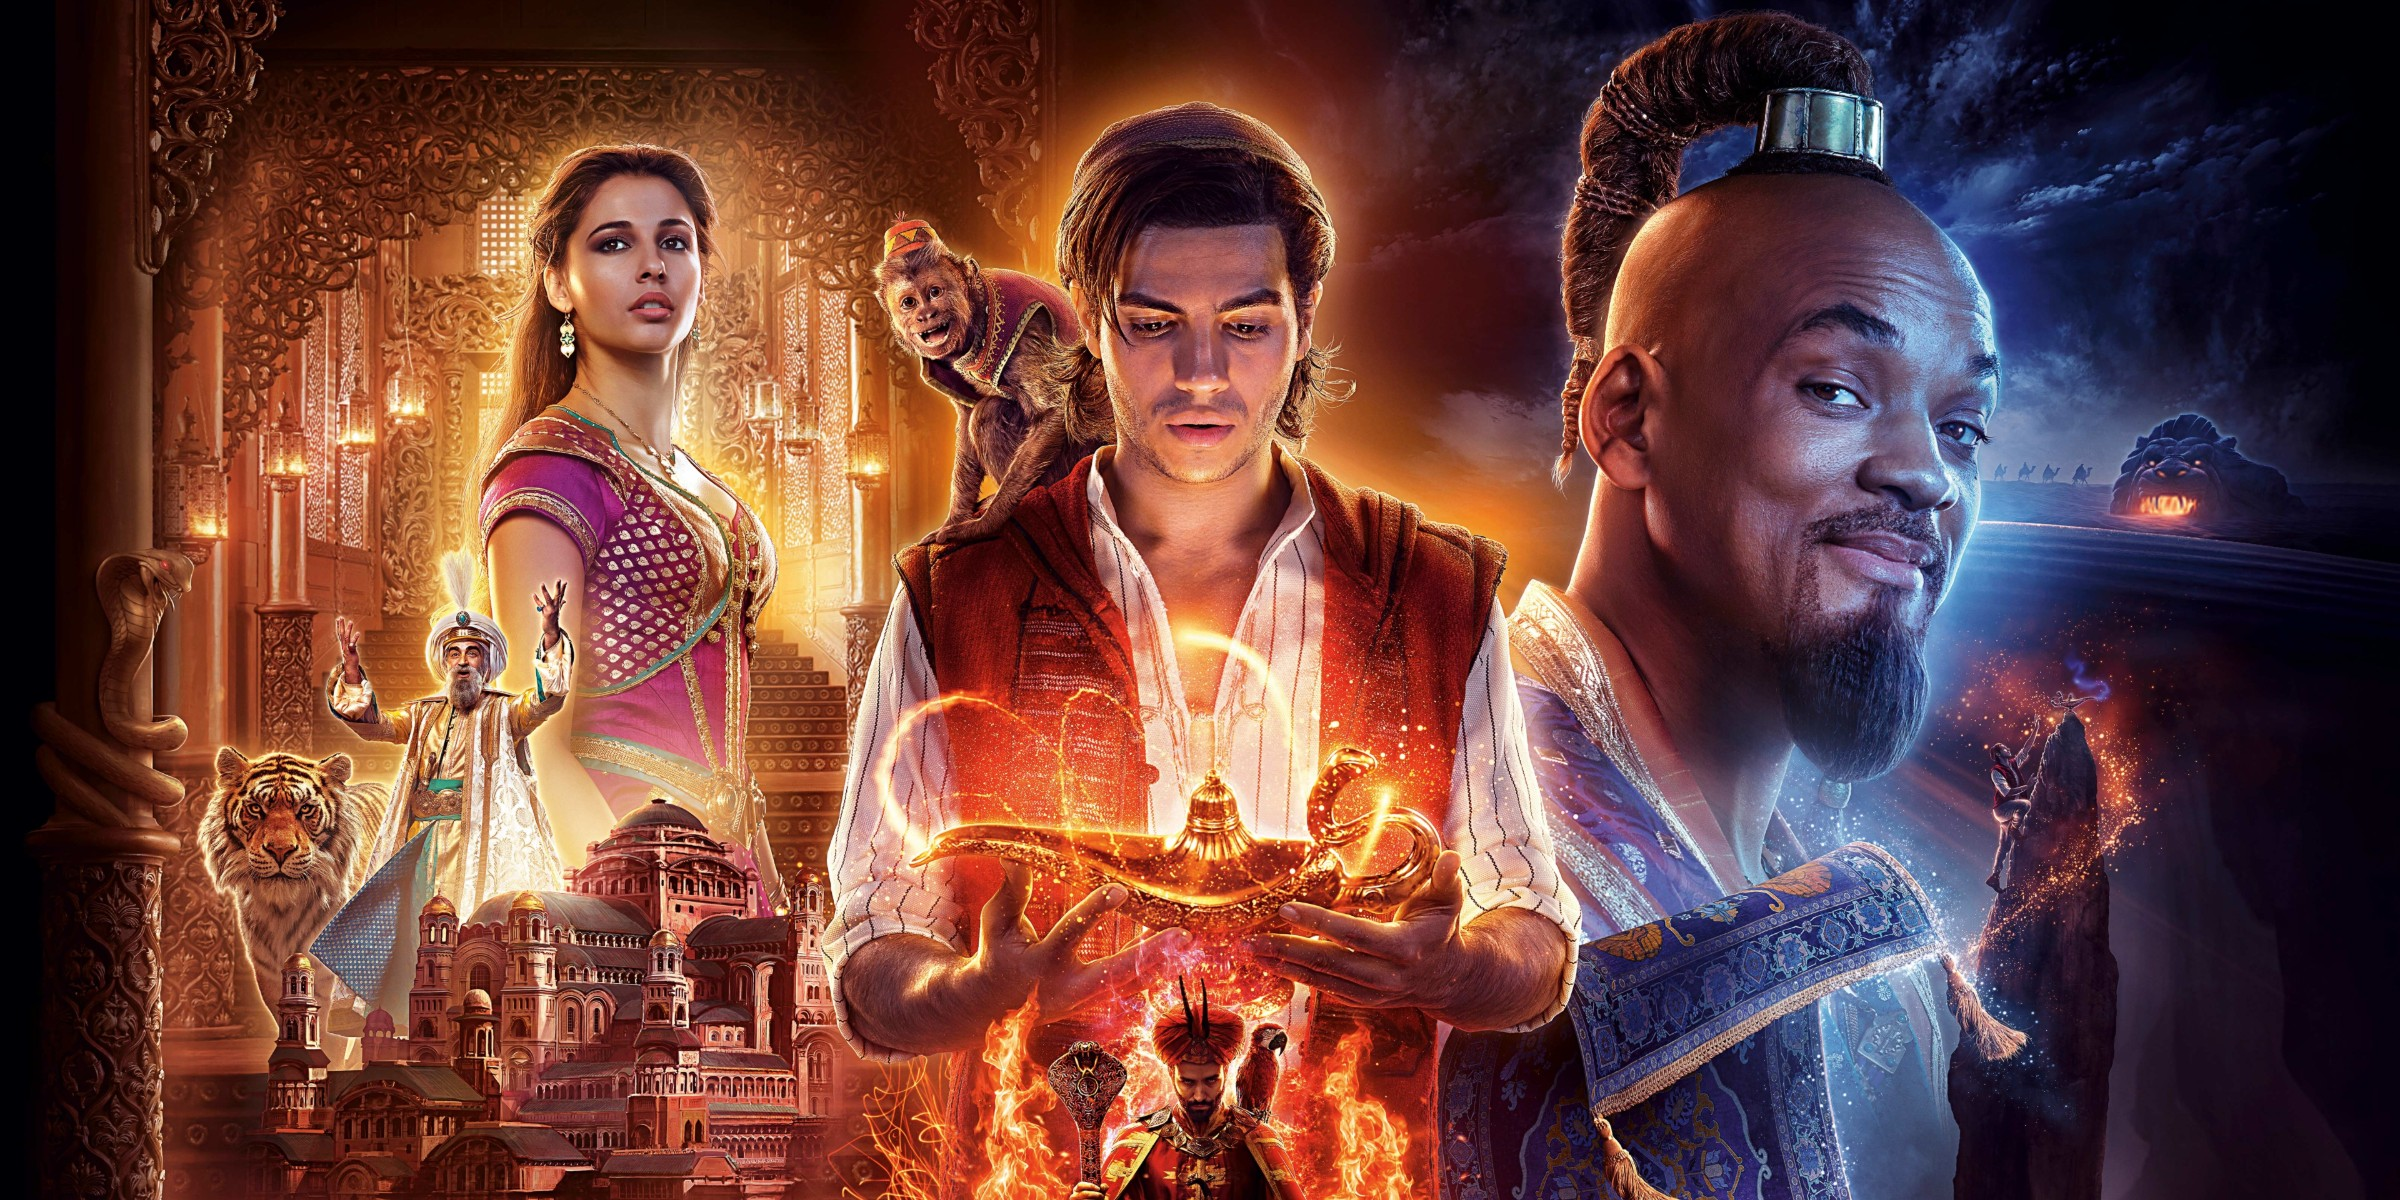 Aladdin 2019 Full Movie Download Openload Reviews